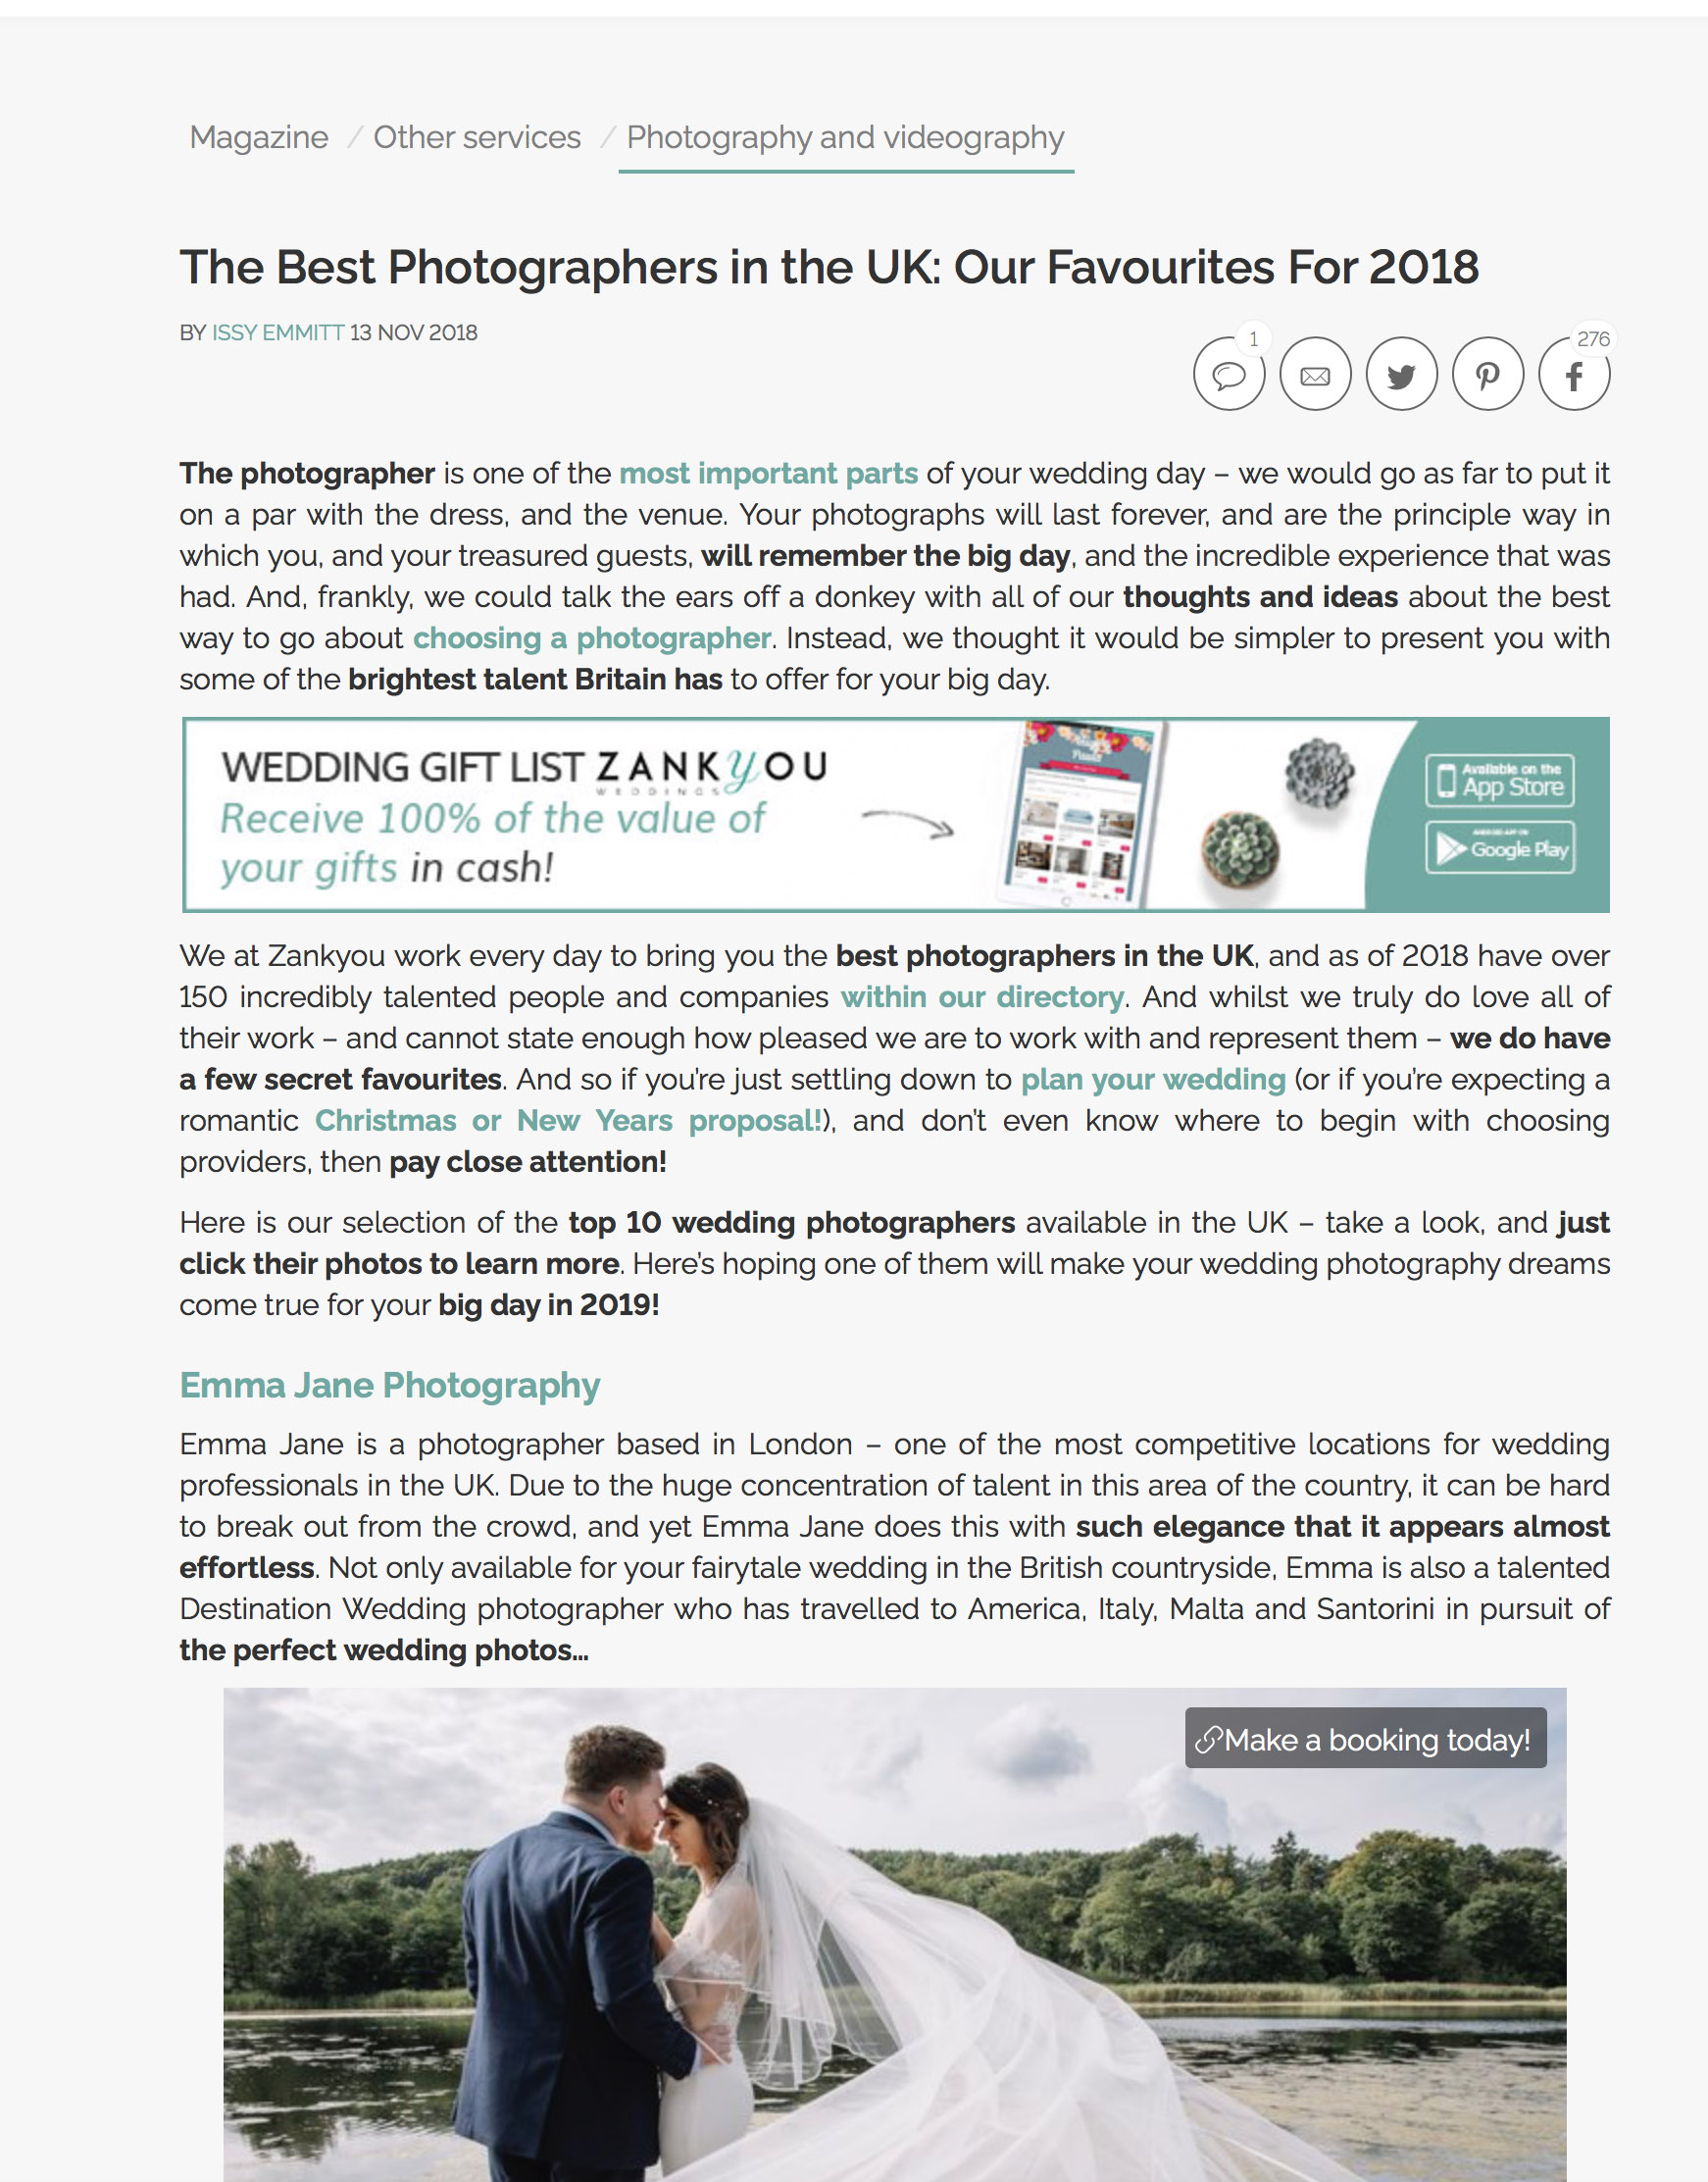 Listed as one of the Top 10 wedding photographers of the UK